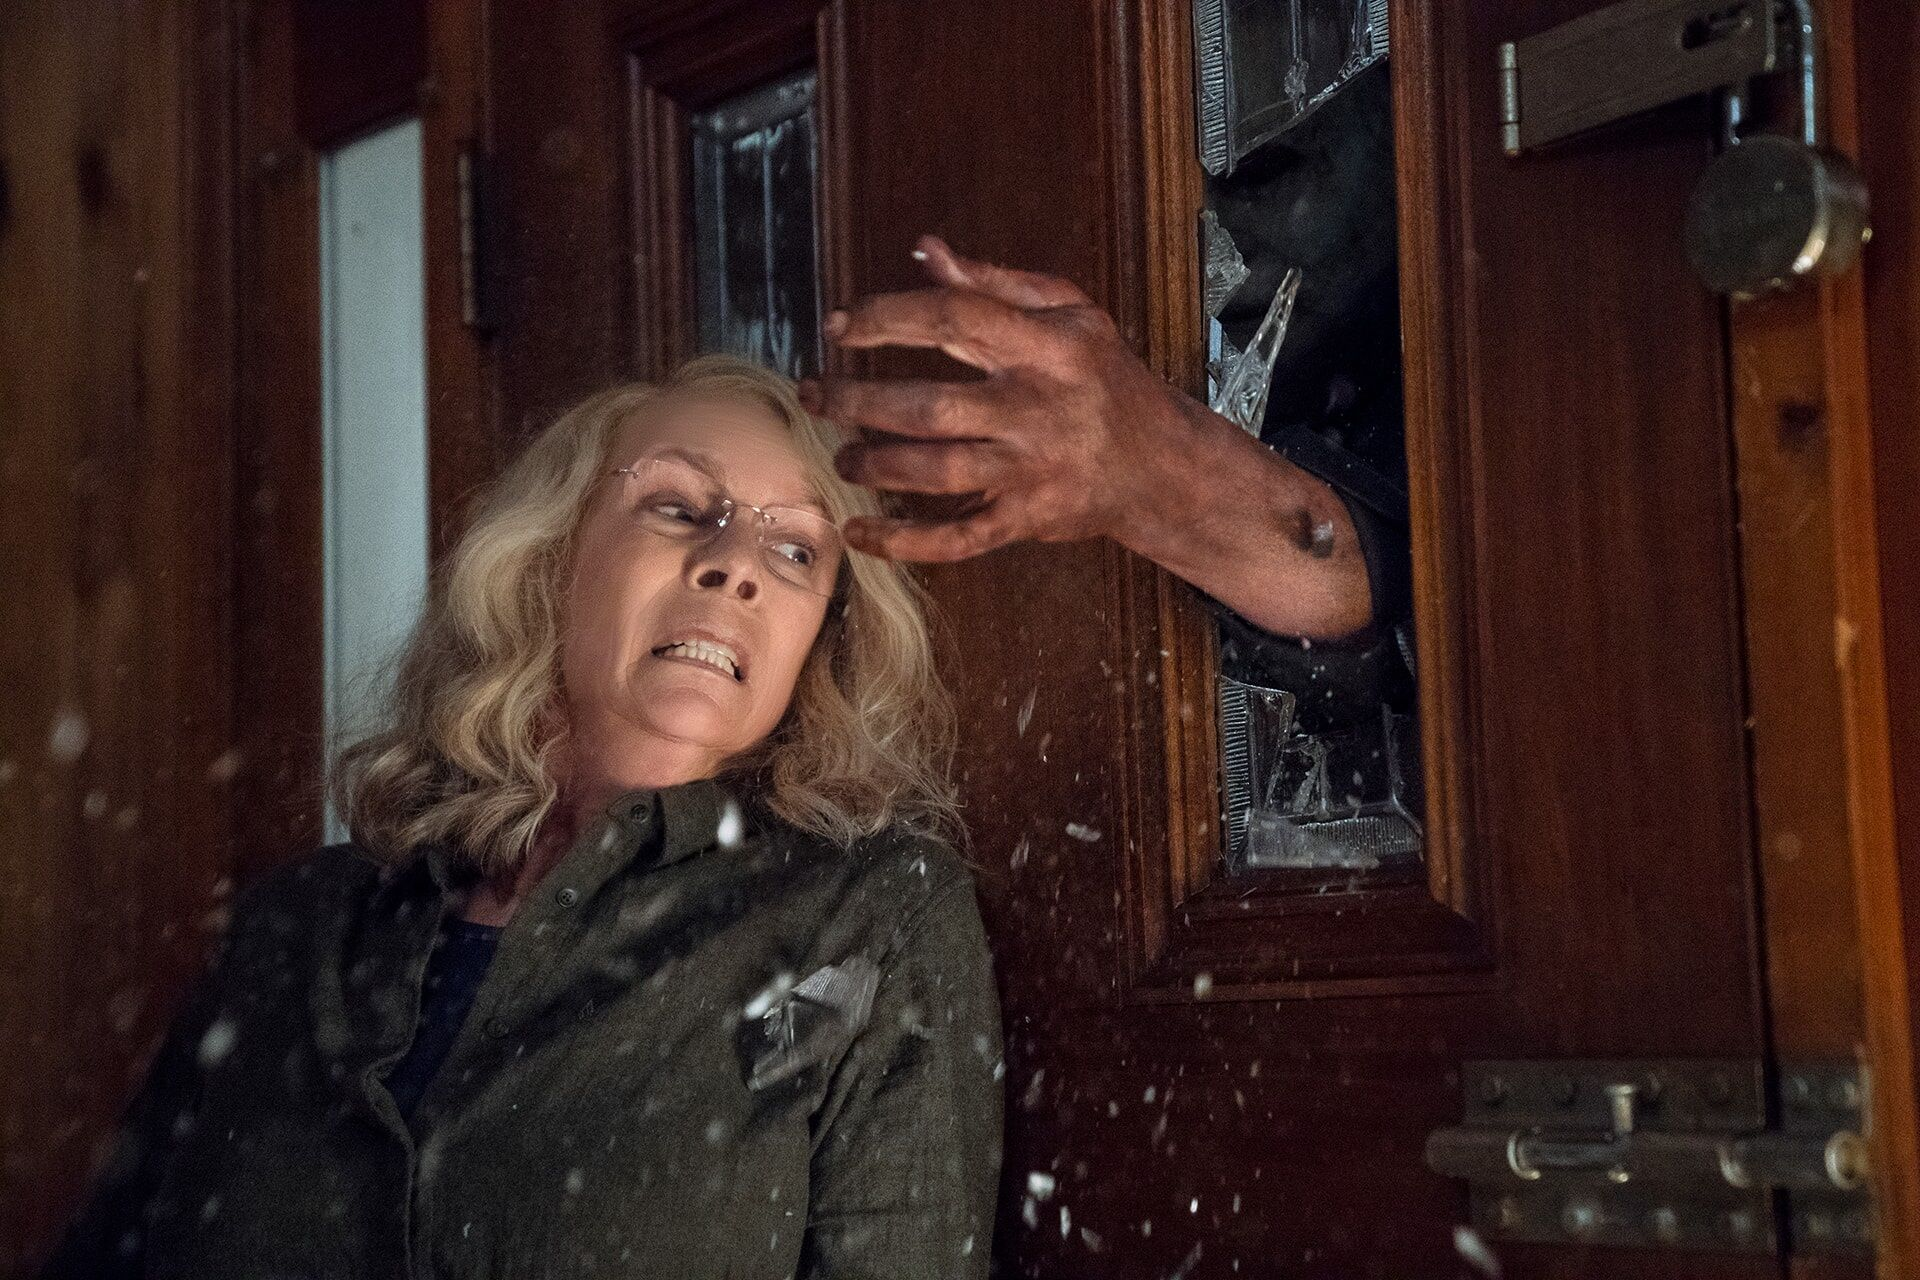 Mark your calendars for these October 2018 horror happenings